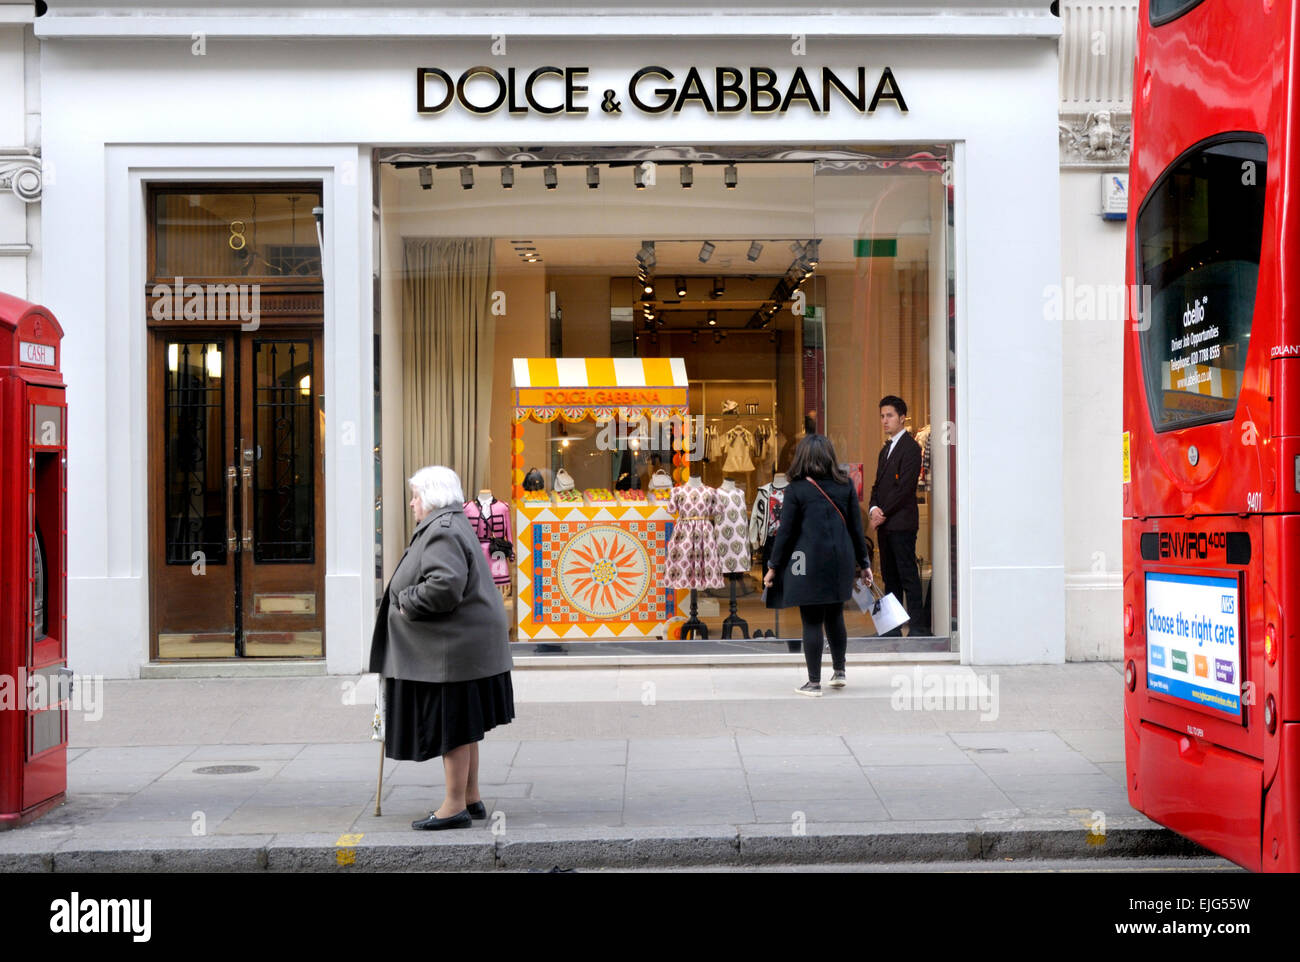 London, England, UK. Dolce & Gabbana shop on Sloane Street, Knightsbridge. - Stock Image